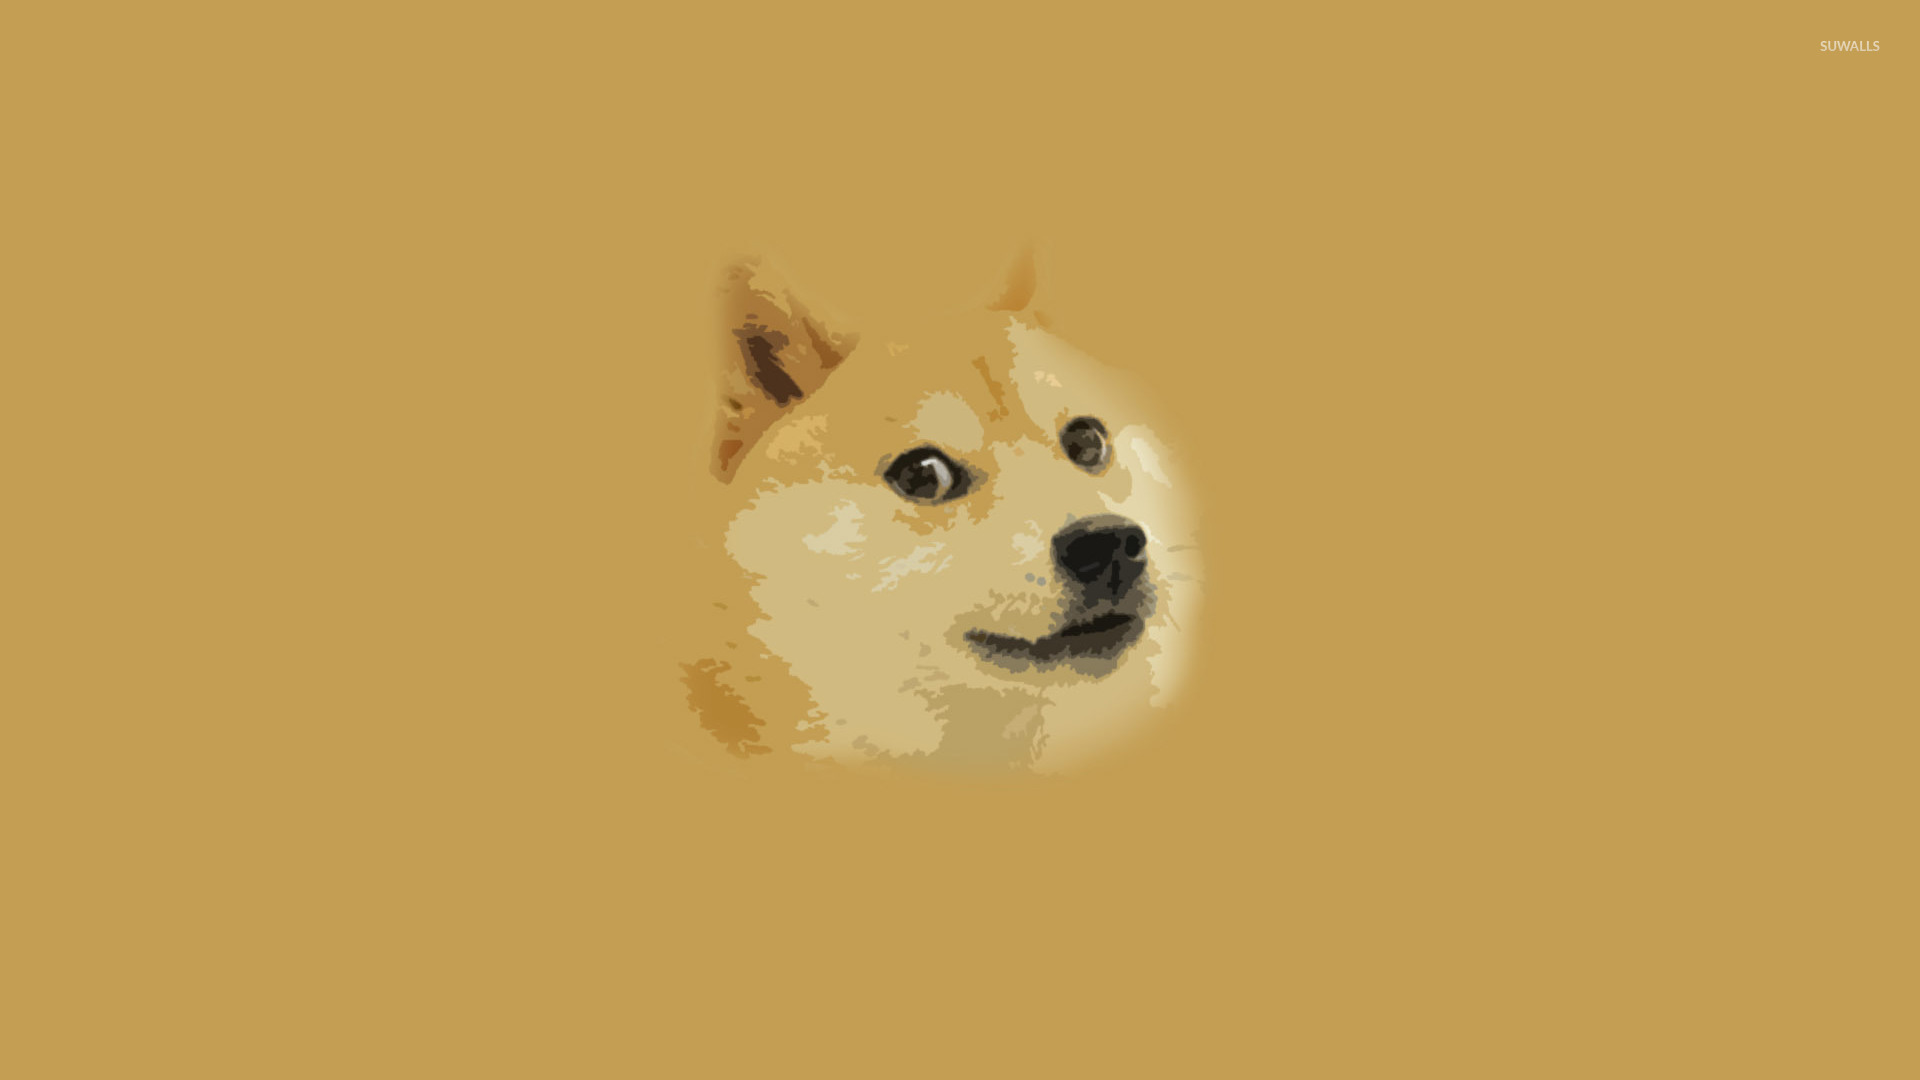 Doge wallpaper 1920x1080 1920x1080